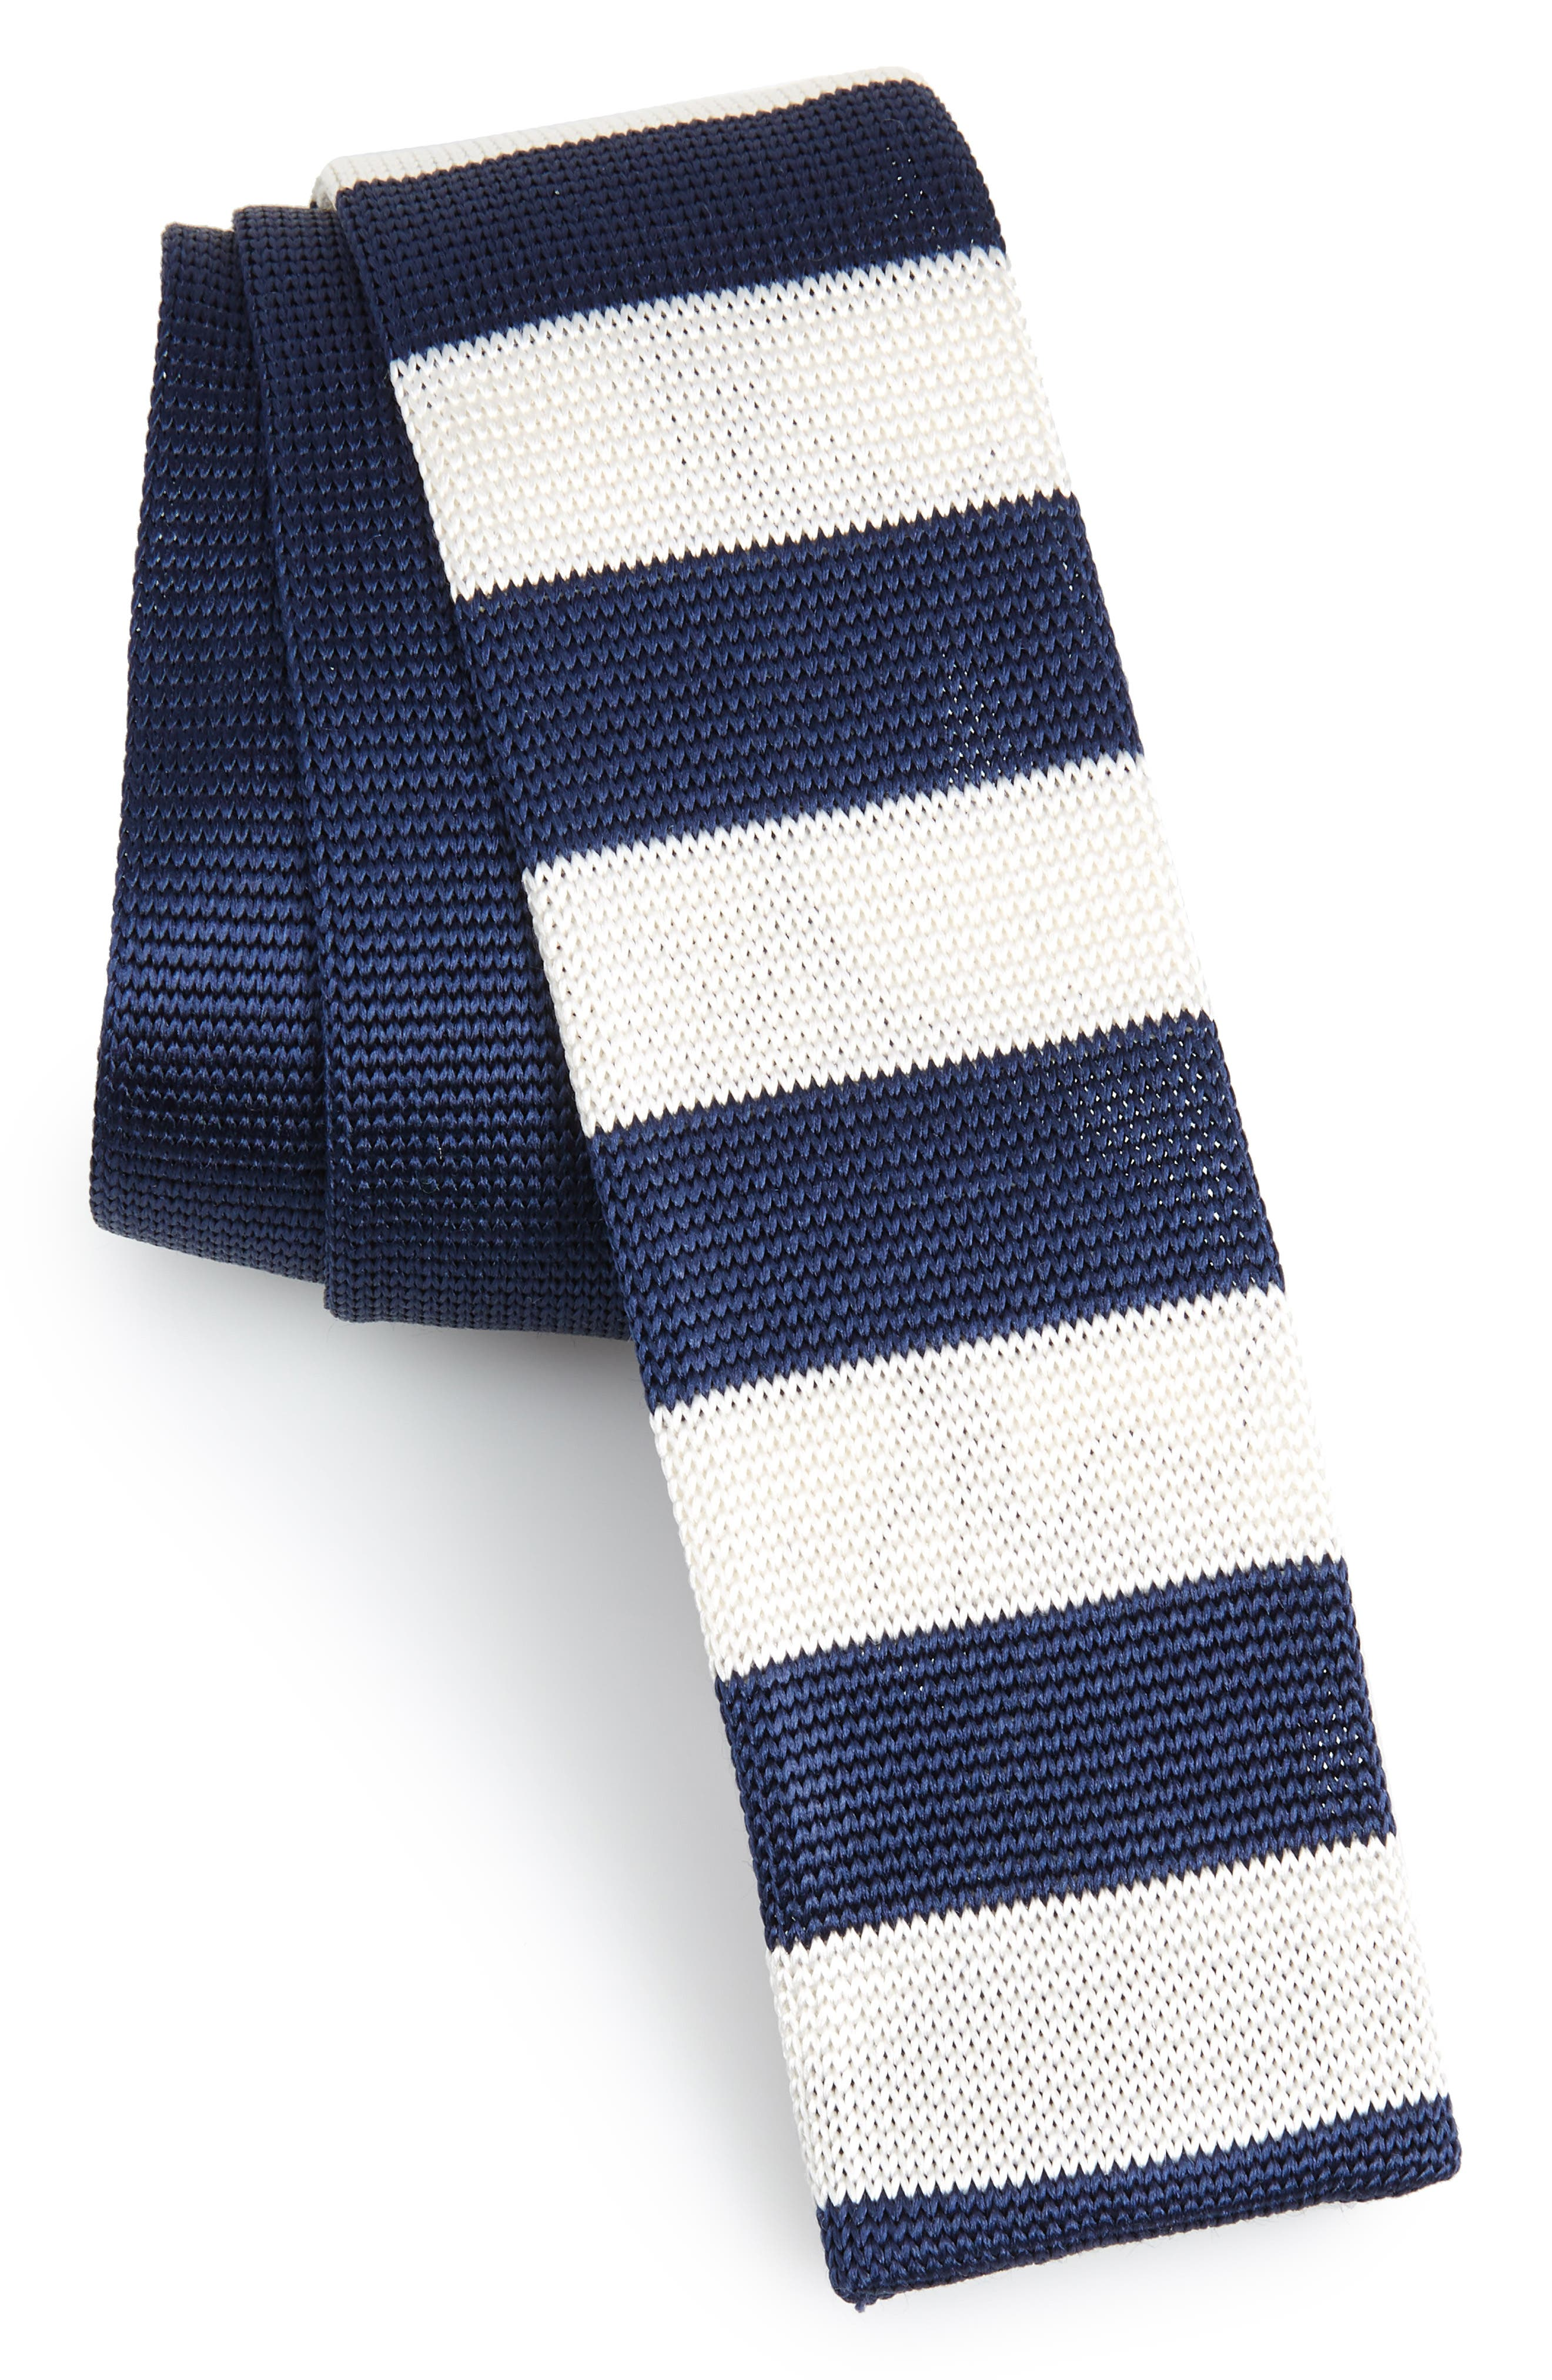 Stripe Knit Silk Skinny Tie,                         Main,                         color, NAVY